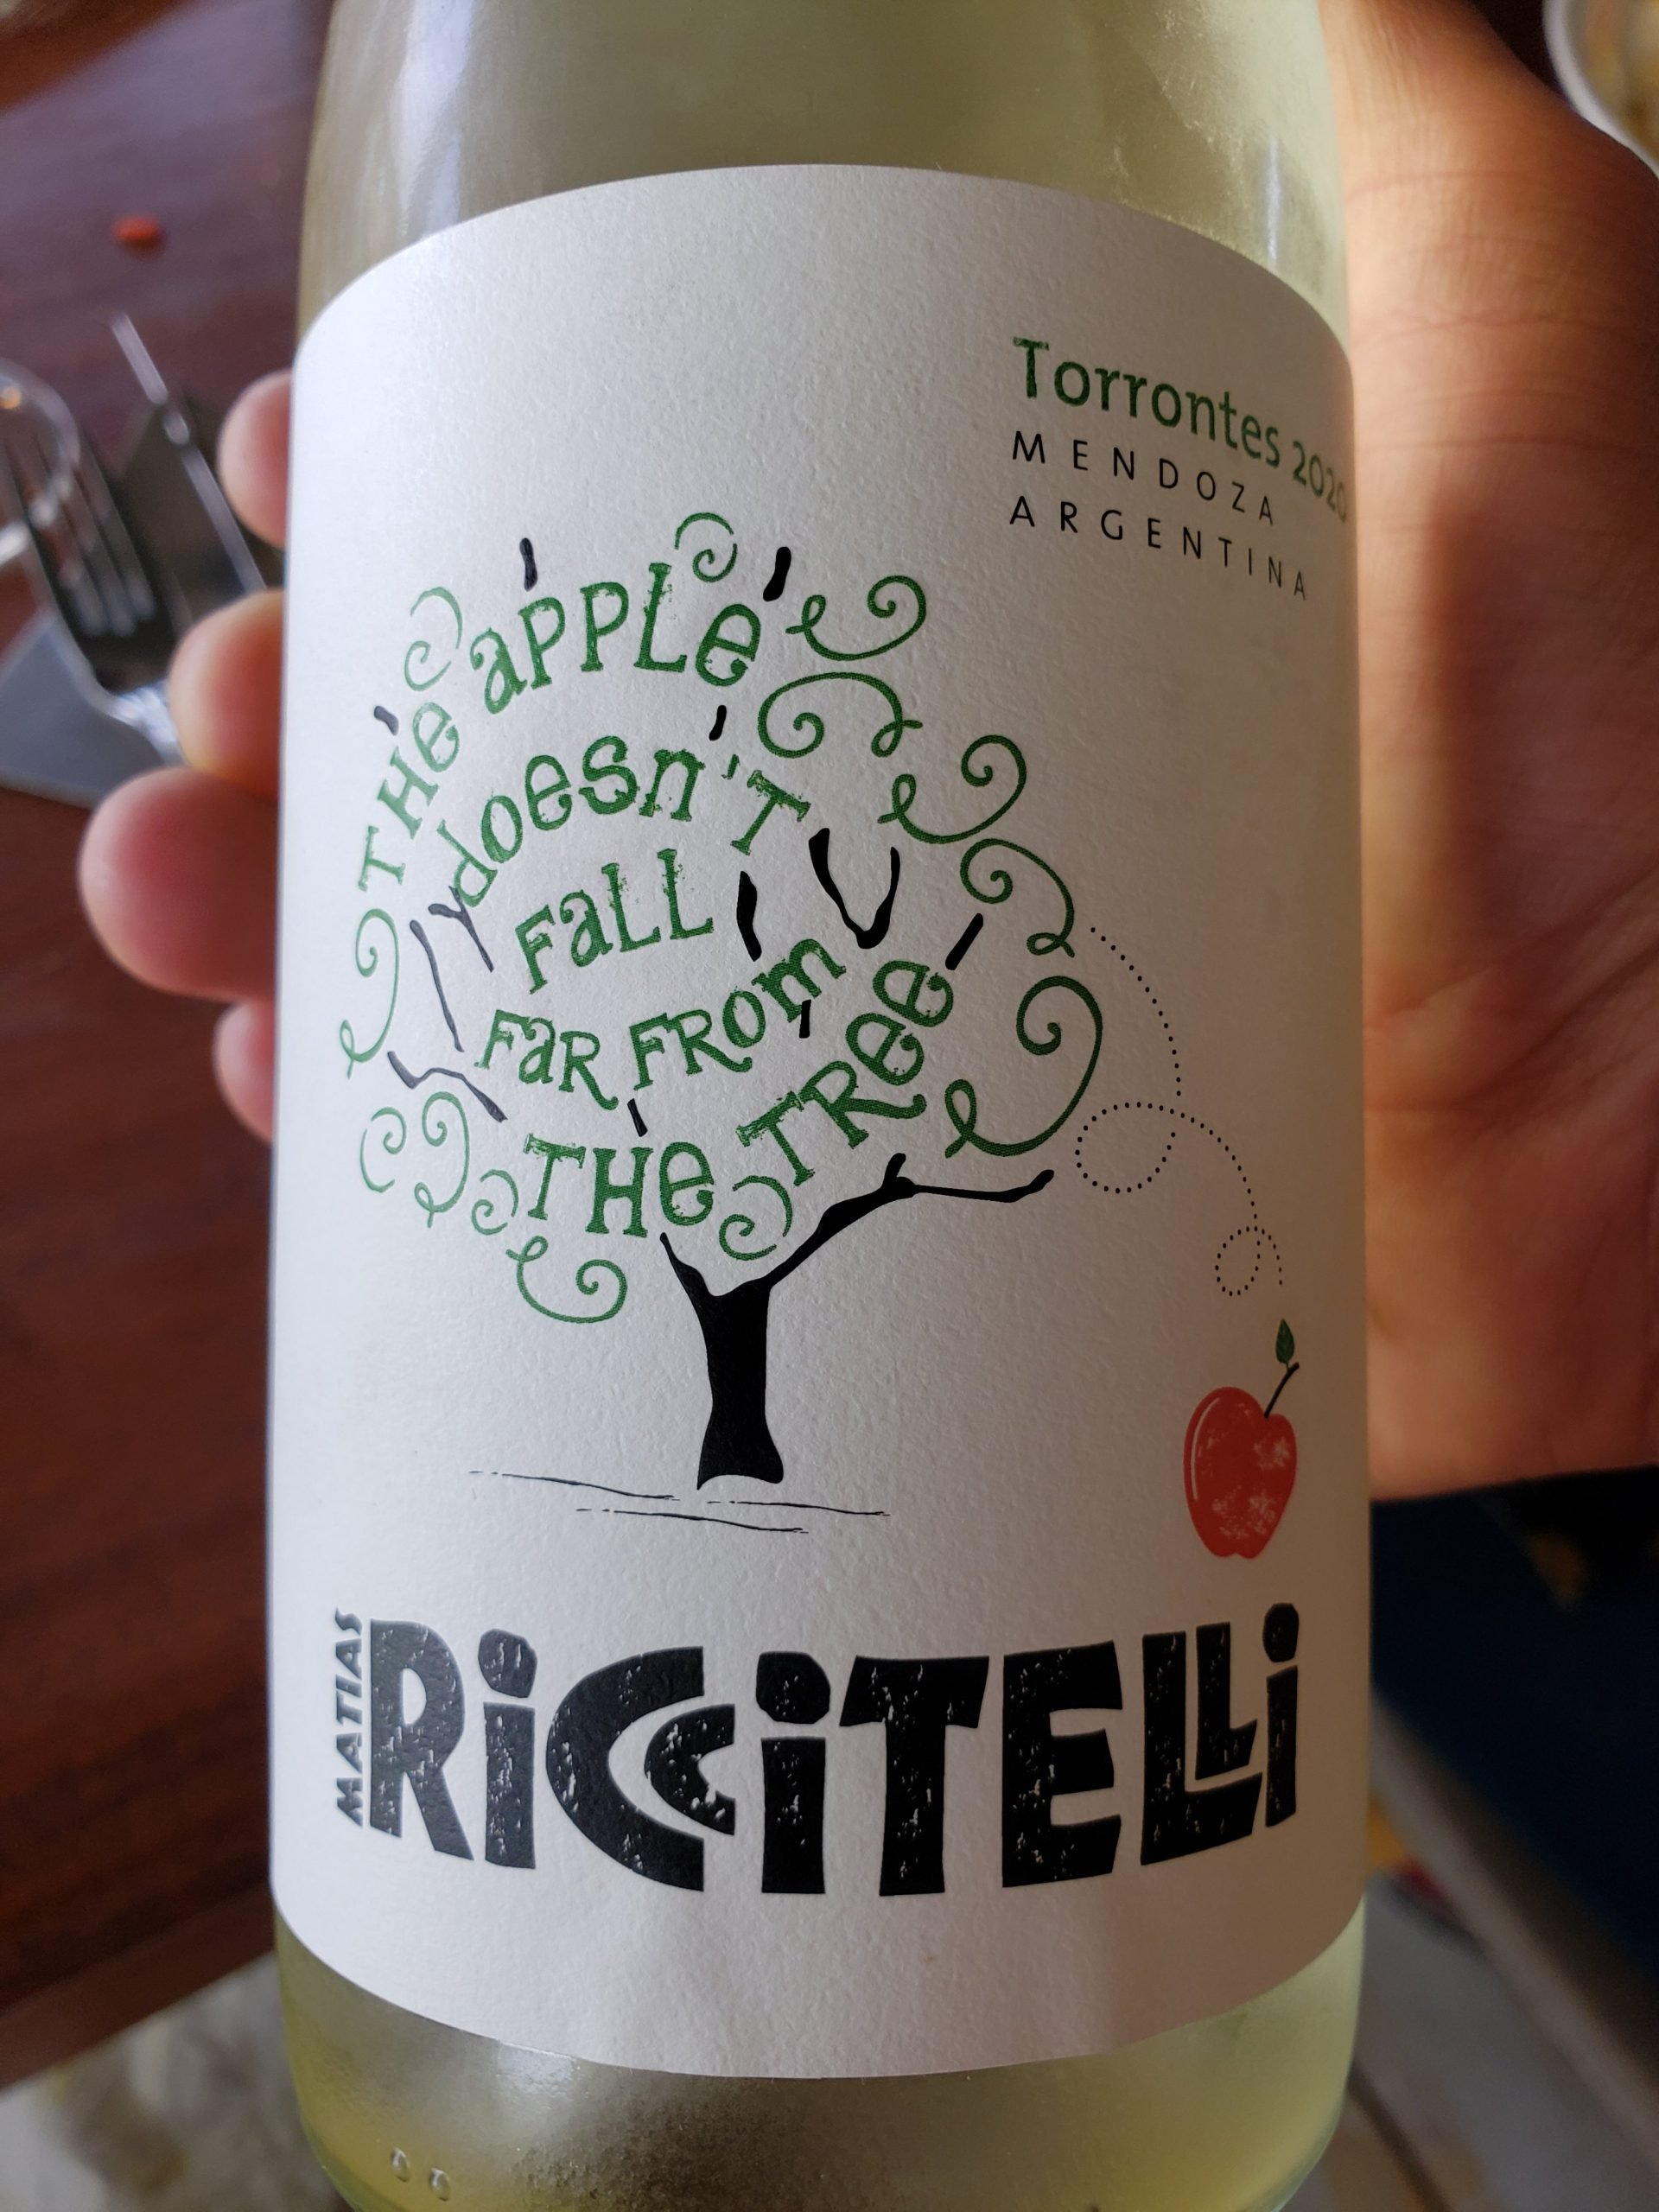 Riccitelli Bistró - Riccitelli Wines - Matías Riccitelli - The Apple Torrontés 2020